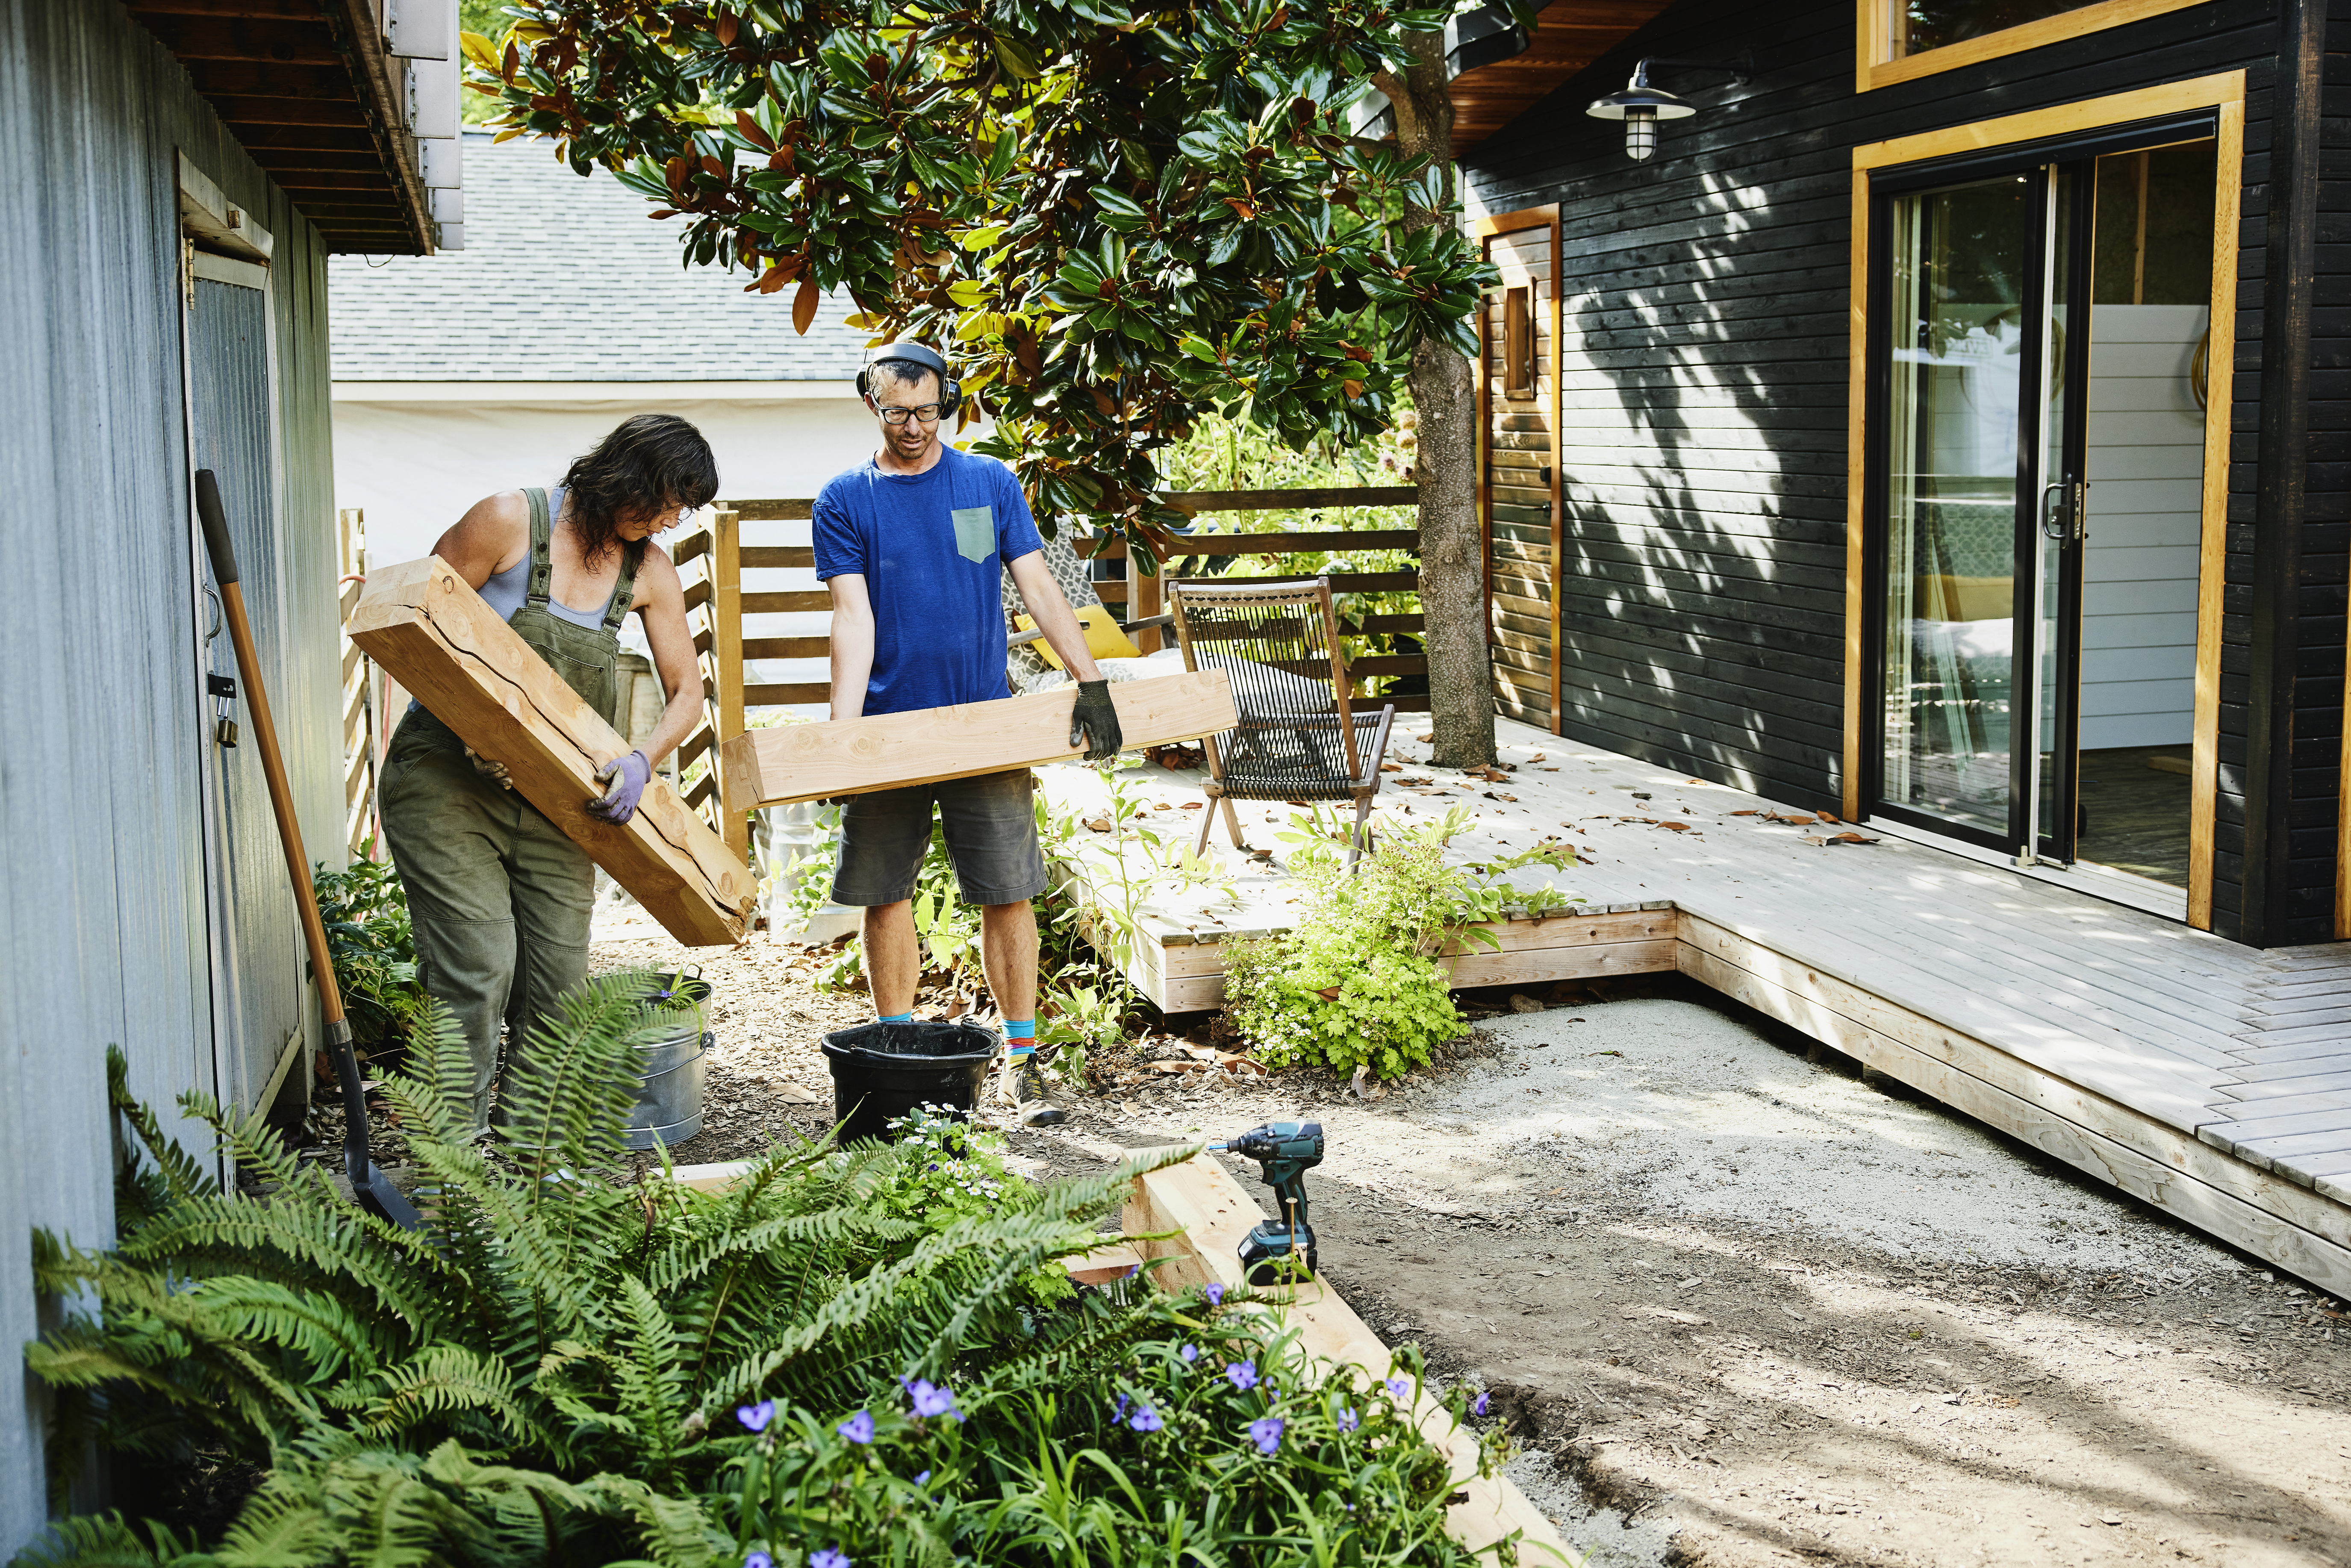 Couple carrying lumber to build raised garden beds in backyard